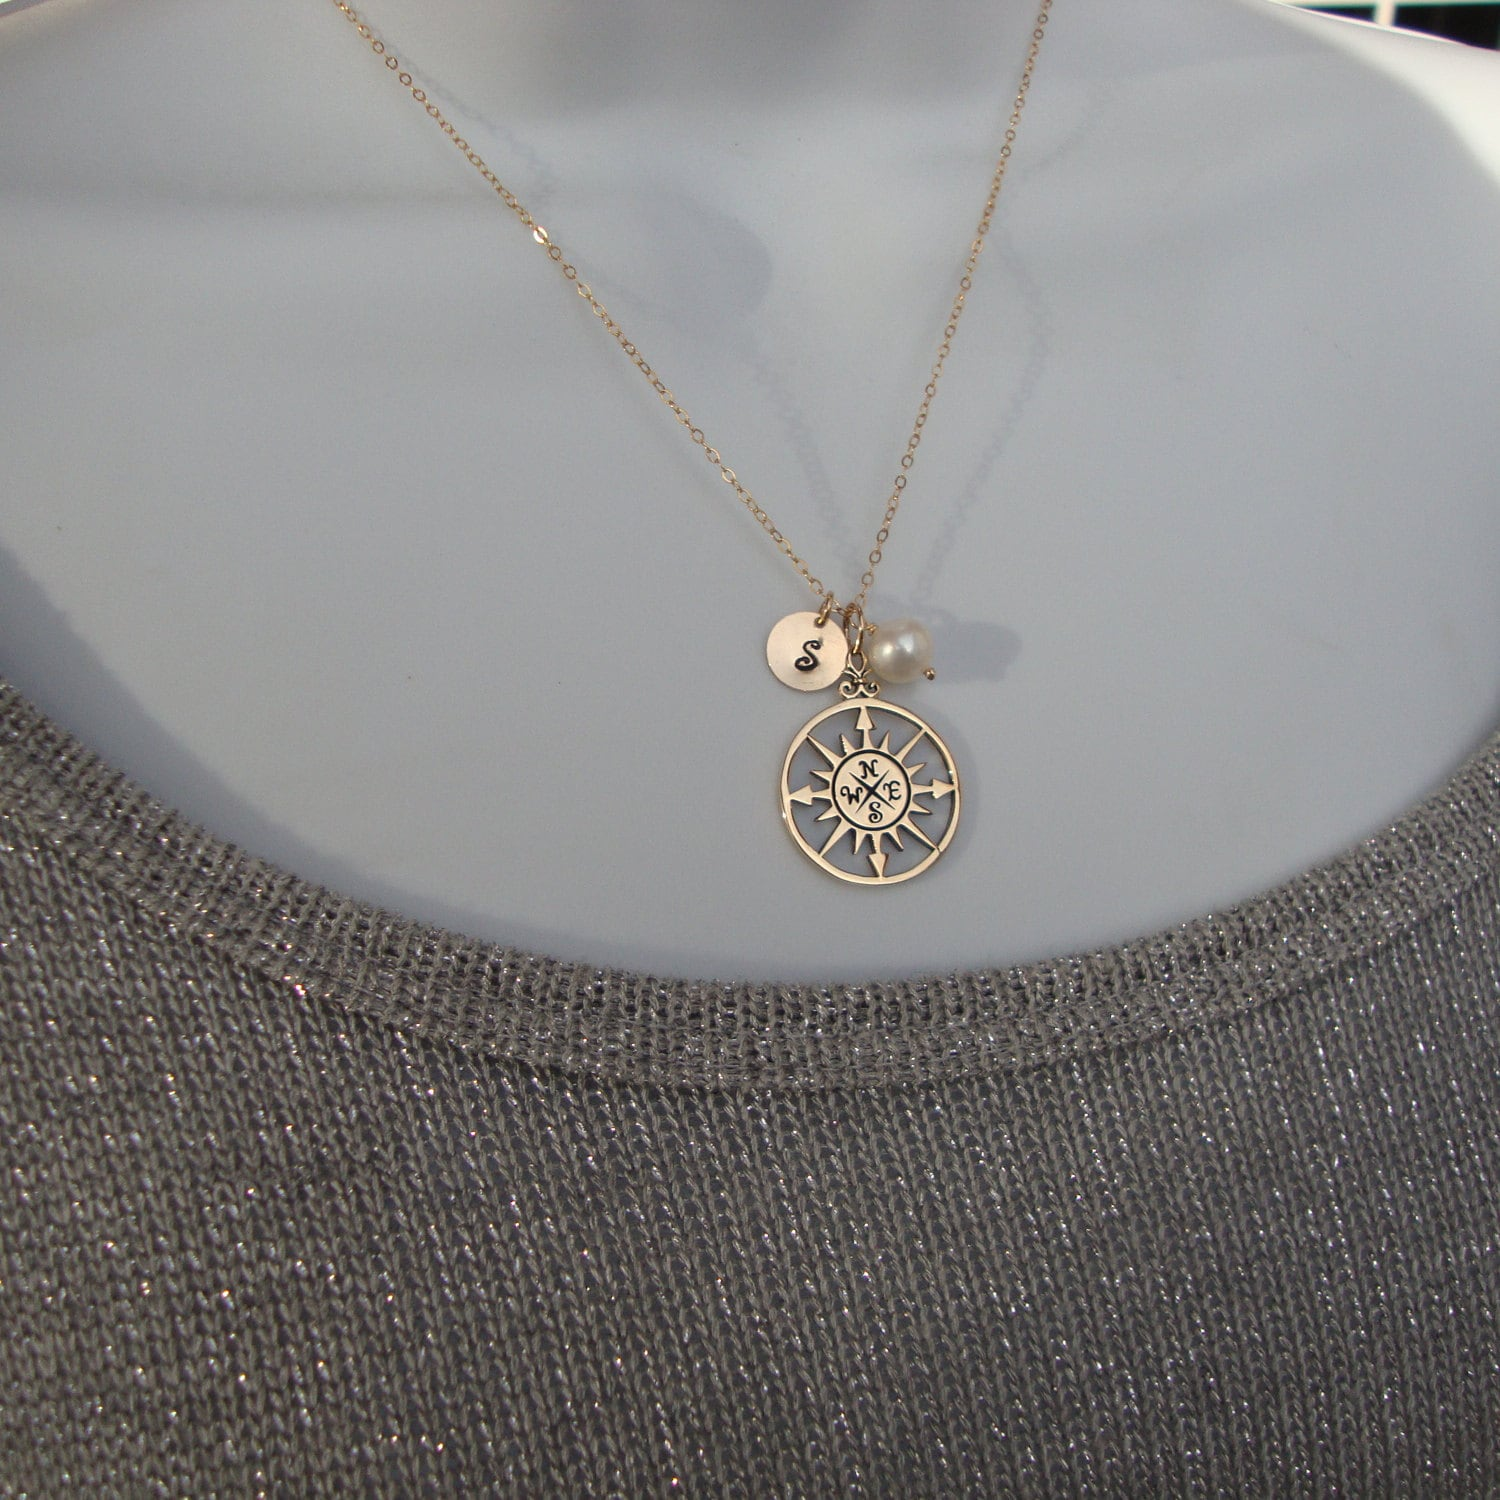 Personalized compass rose necklace gold filled monogram for Rose gold personalized jewelry